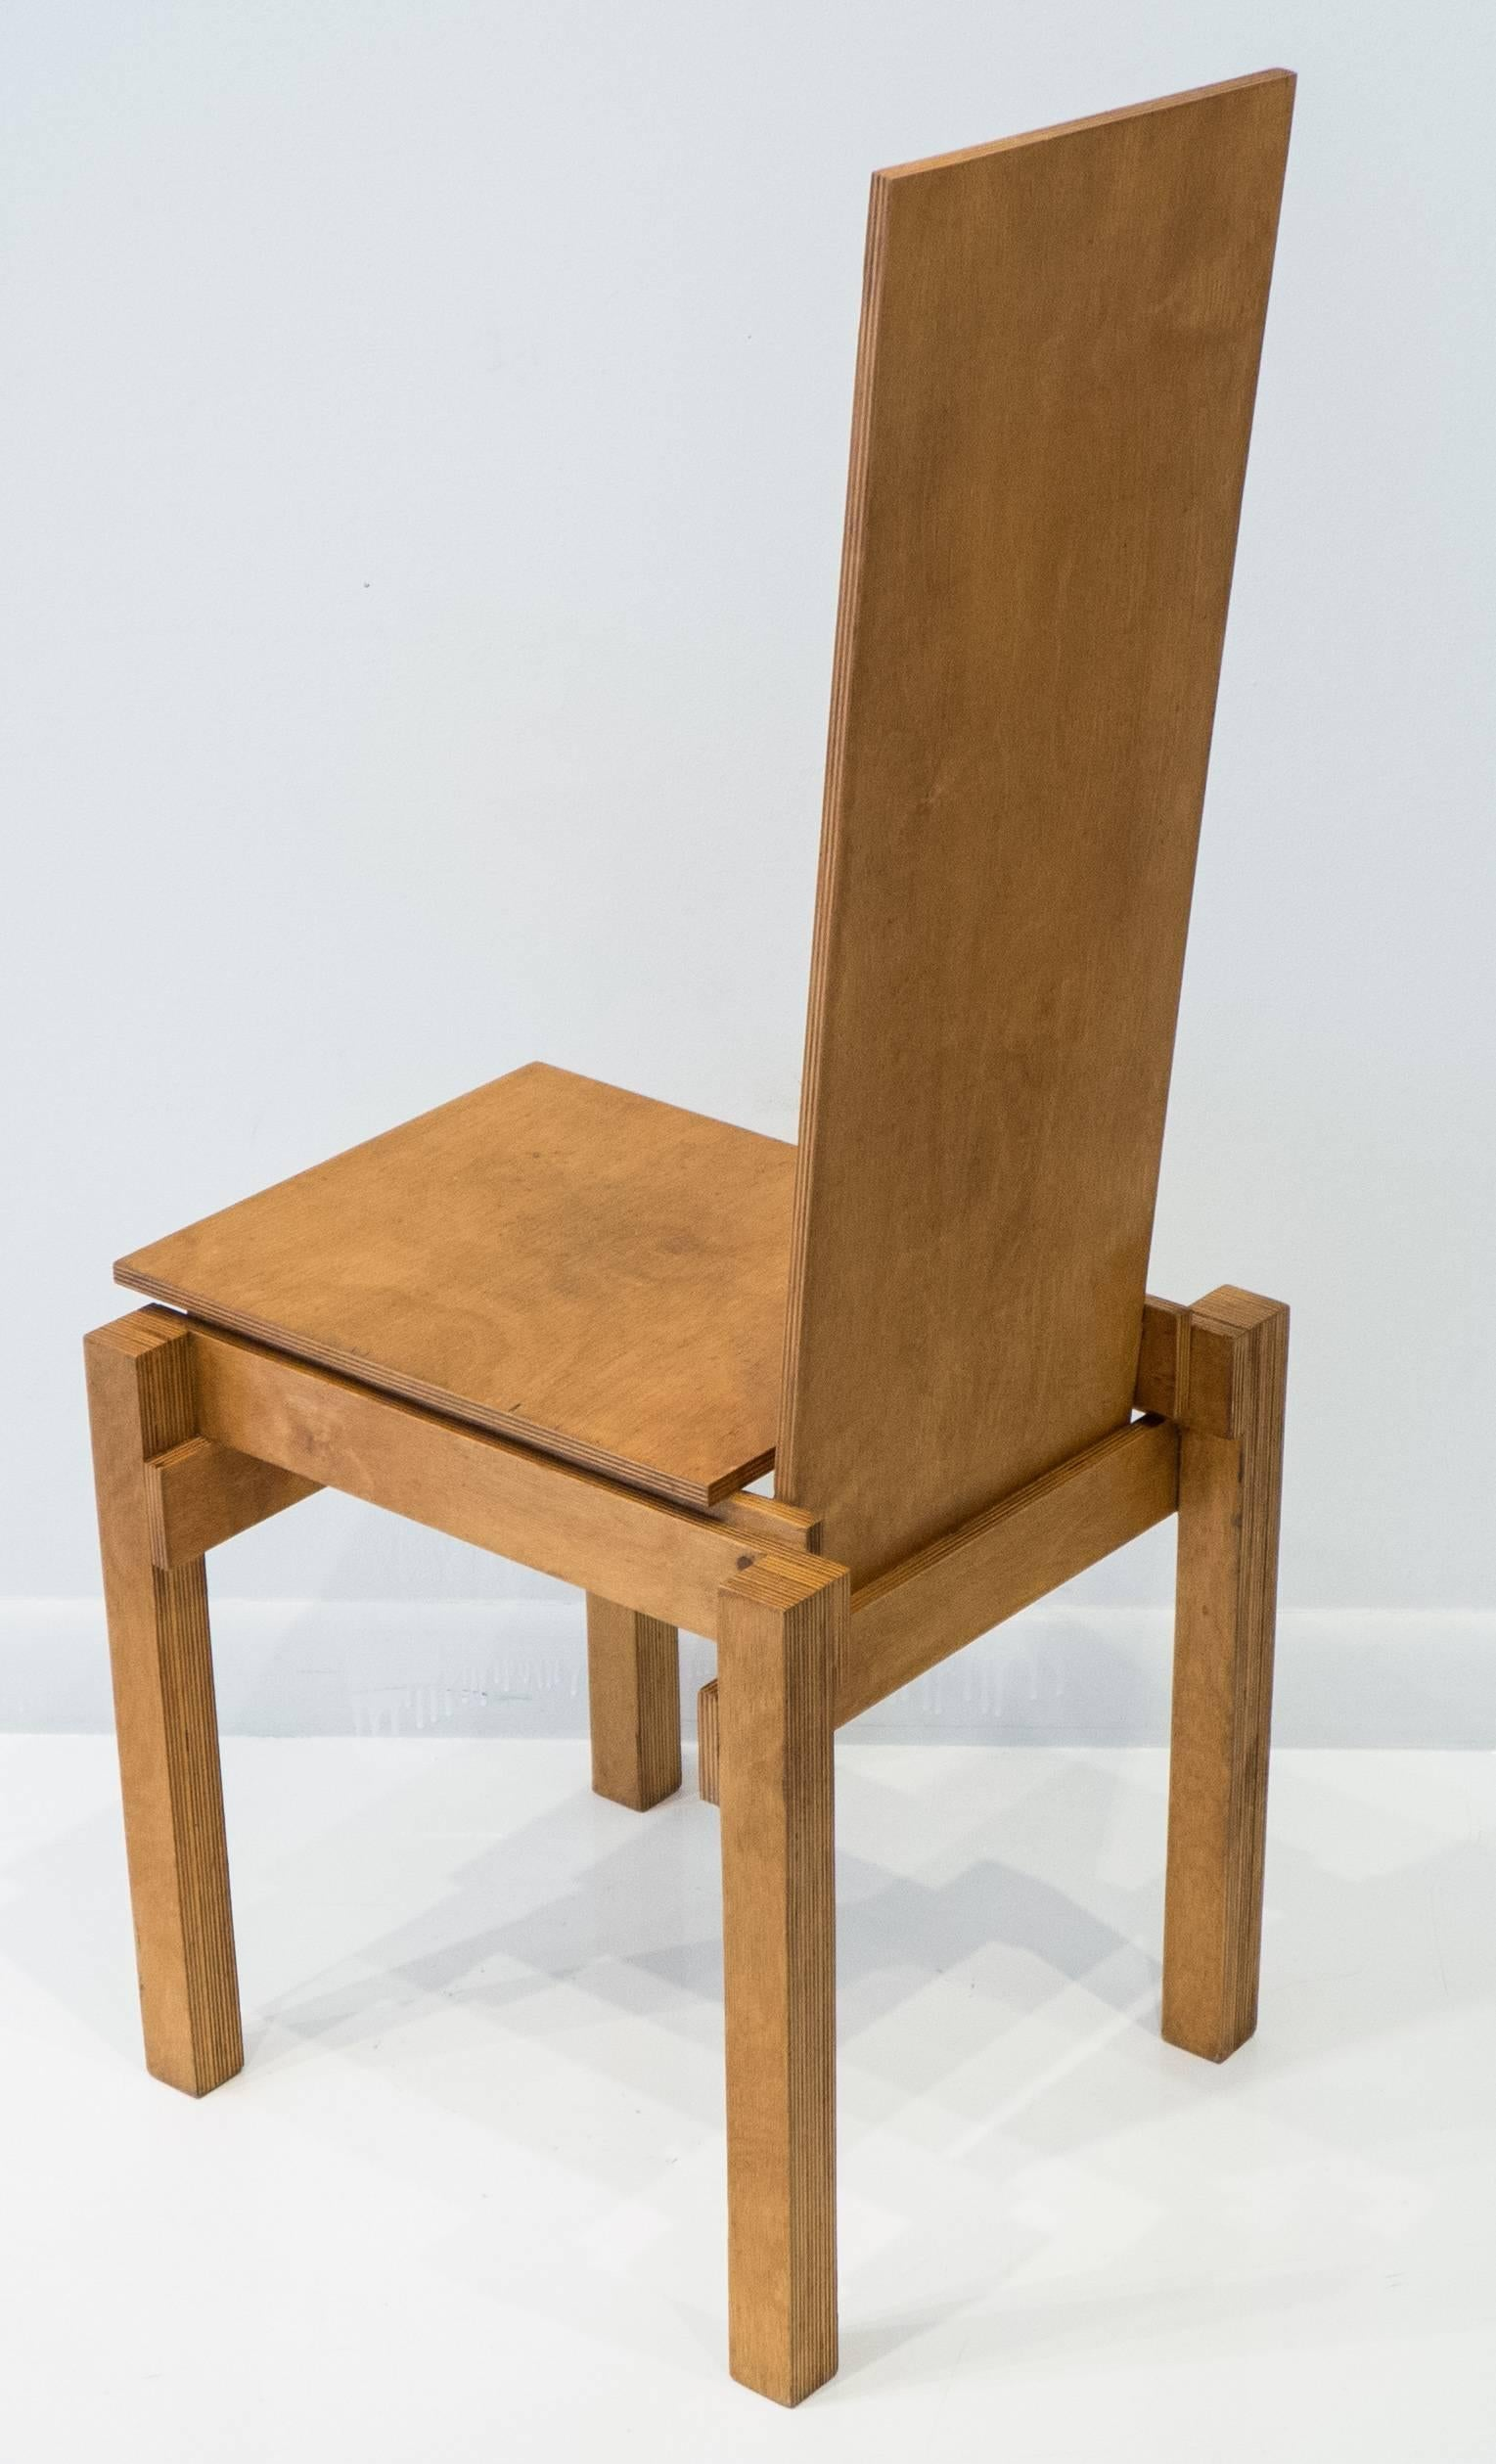 Constructivist Chair In Birch Plywood For Sale At 1stdibs